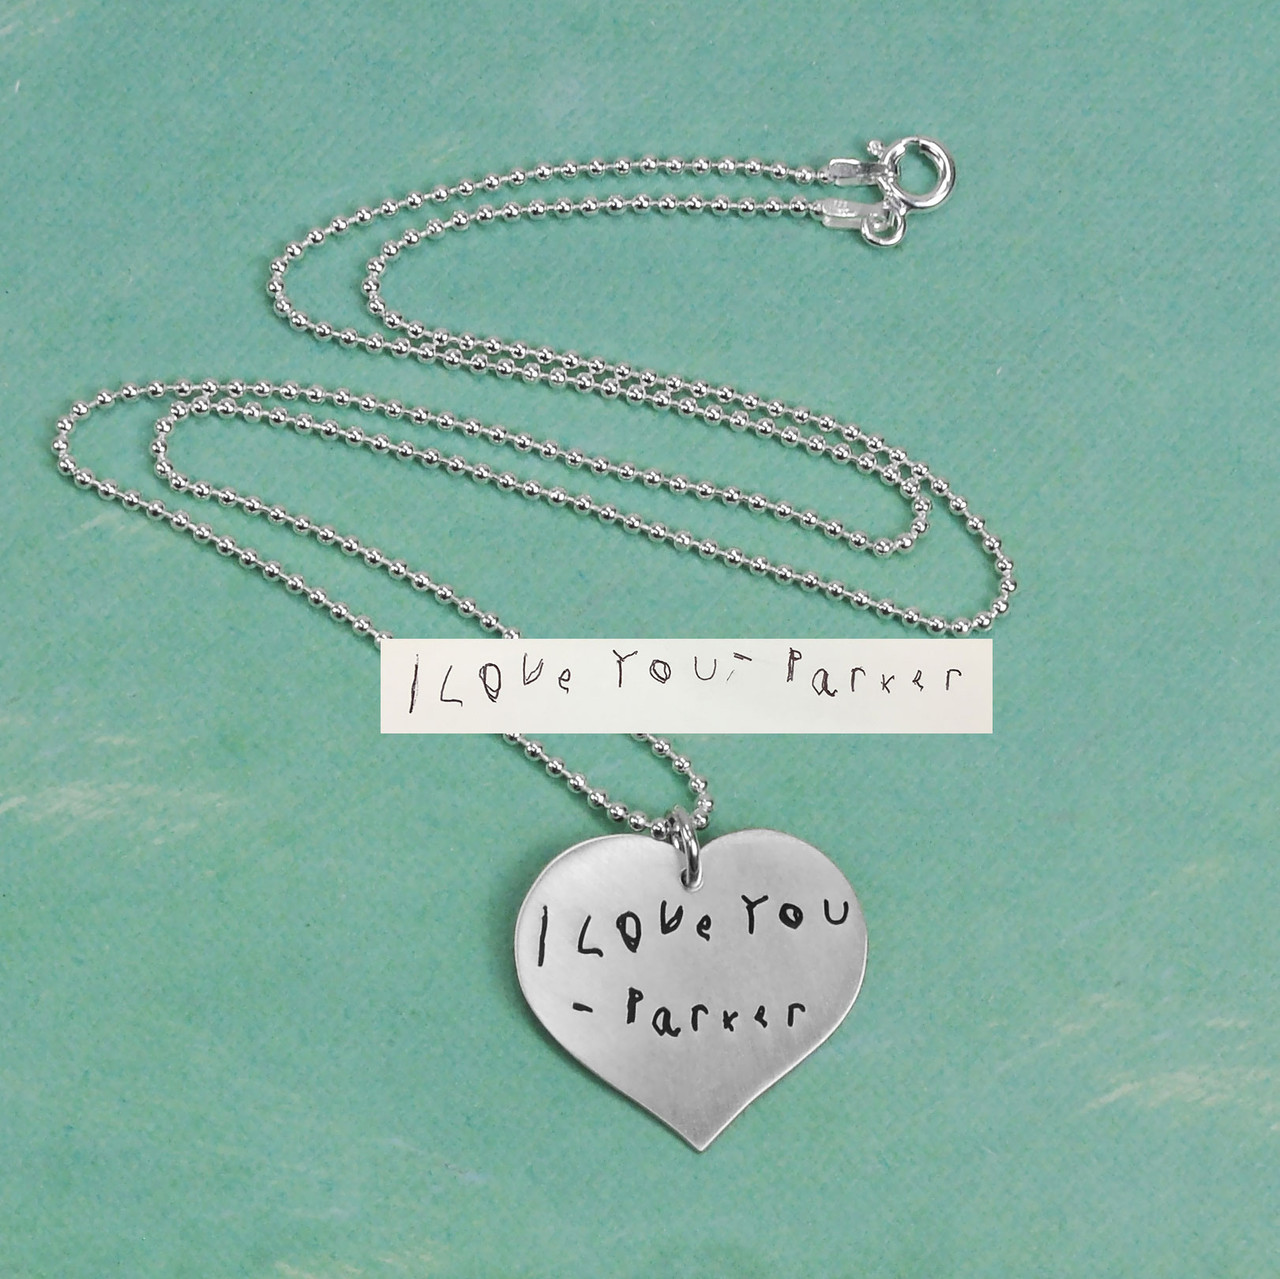 Custom Silver Heart Handwriting Necklace with your actual handwriting, shown with original handwriting